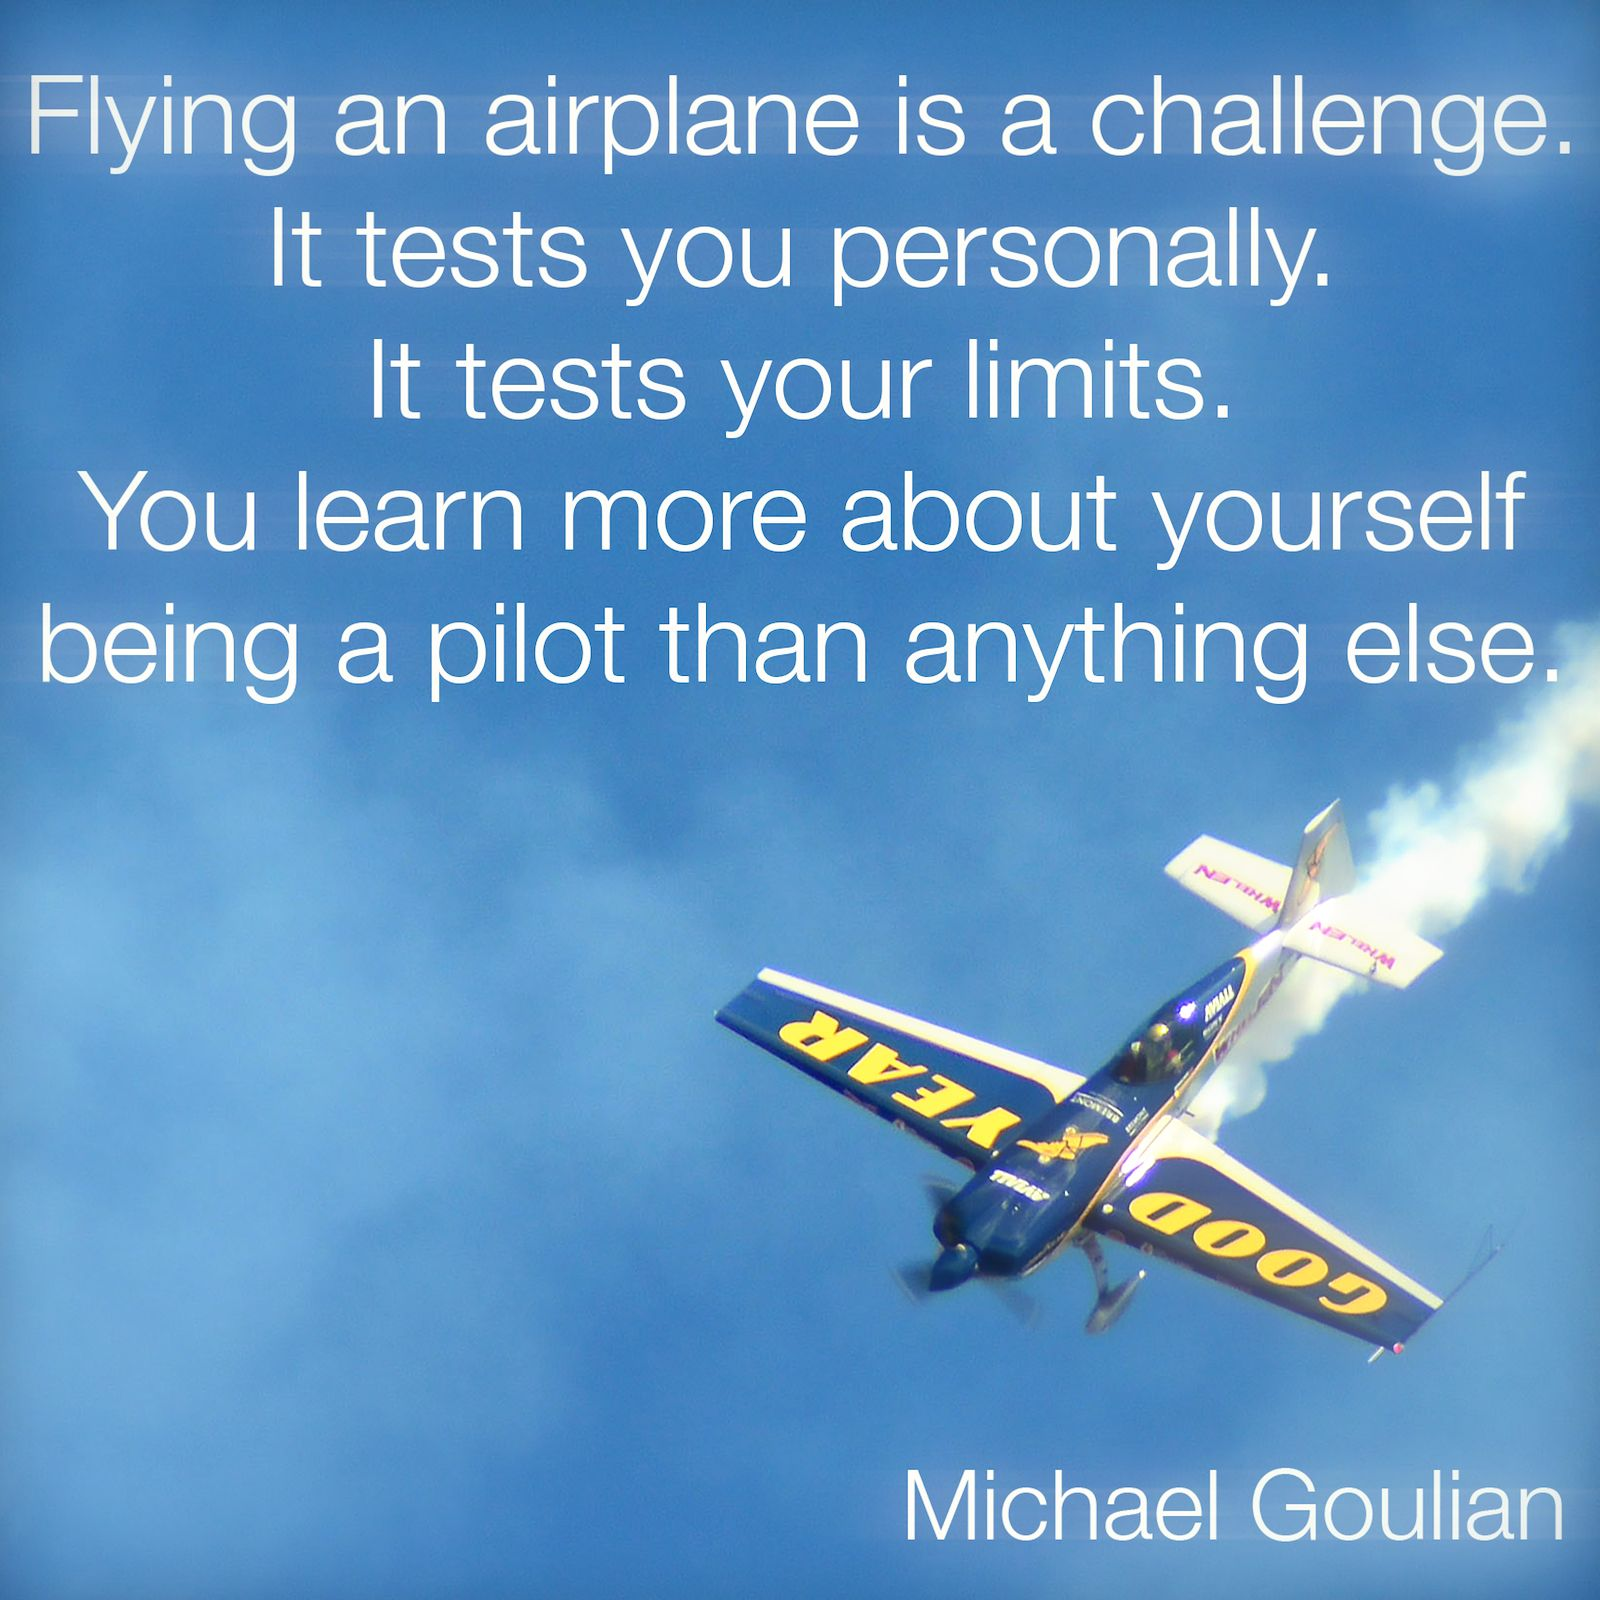 Michael Goulian On Flying